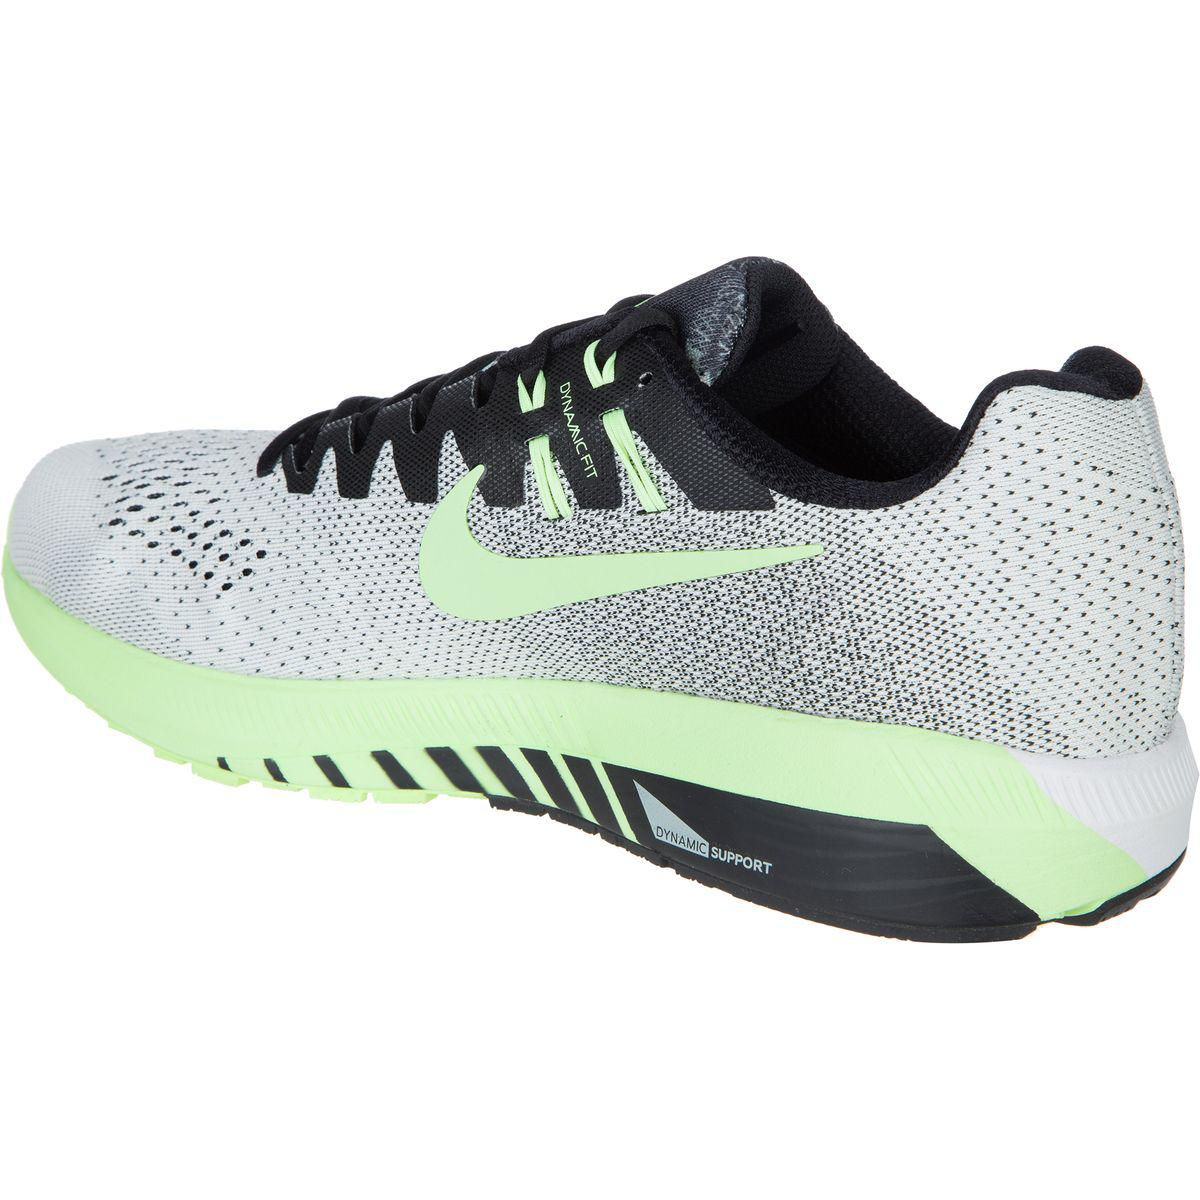 best website 201cd b5234 Nike - Multicolor Air Zoom Structure 20 Solstice Running Shoe for Men - Lyst